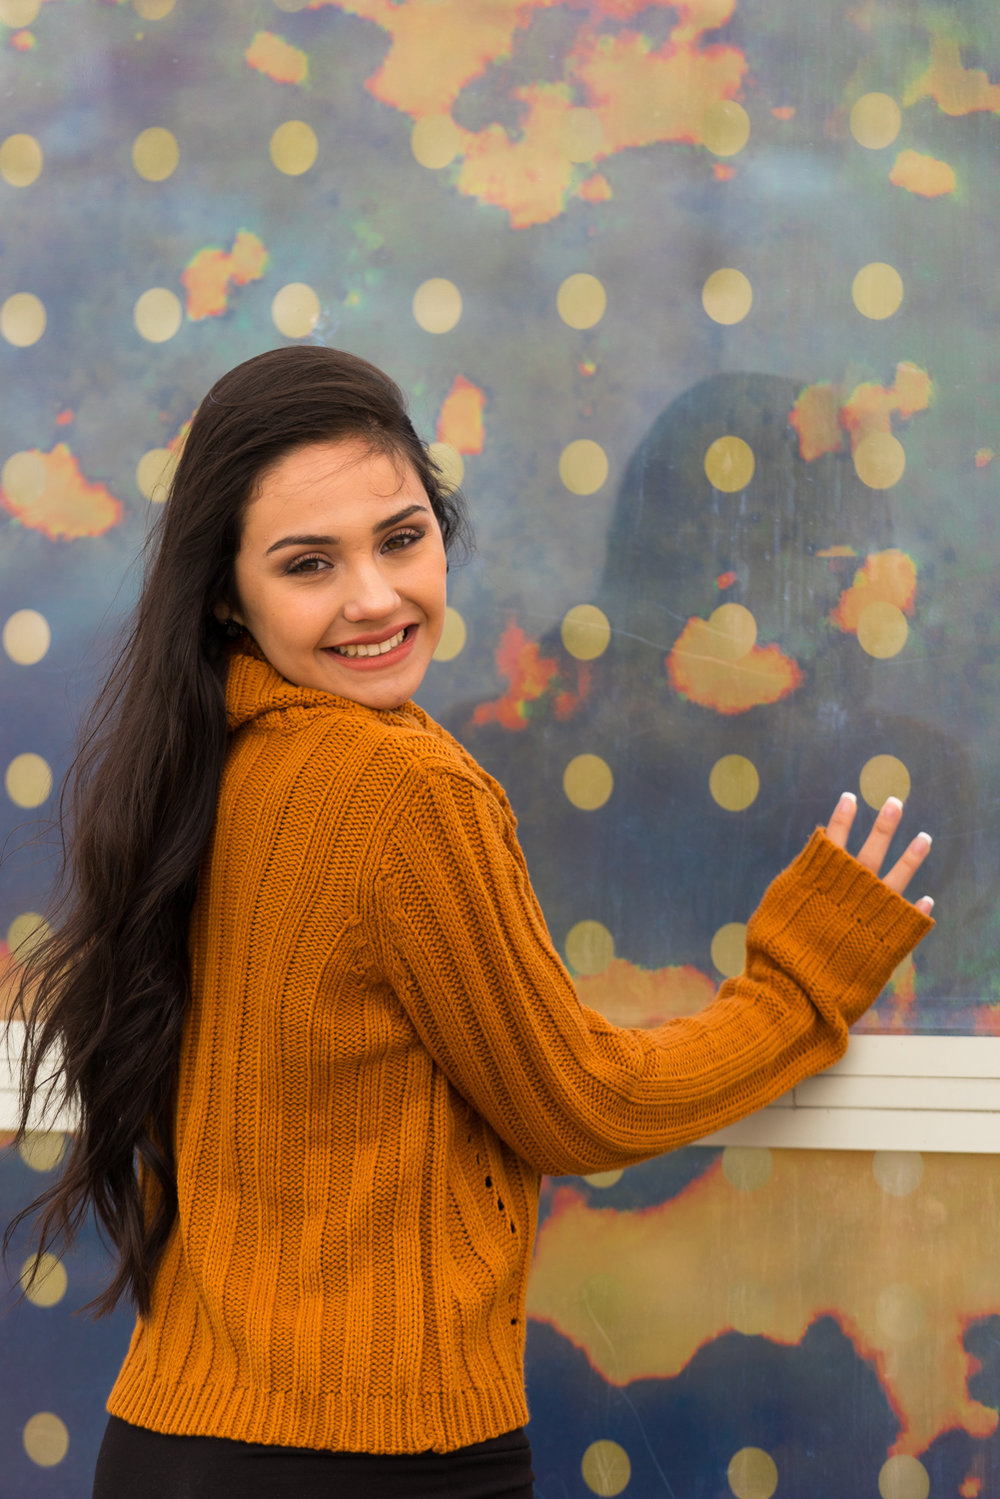 senior girl smiling-SF East Bay lifestyle photography